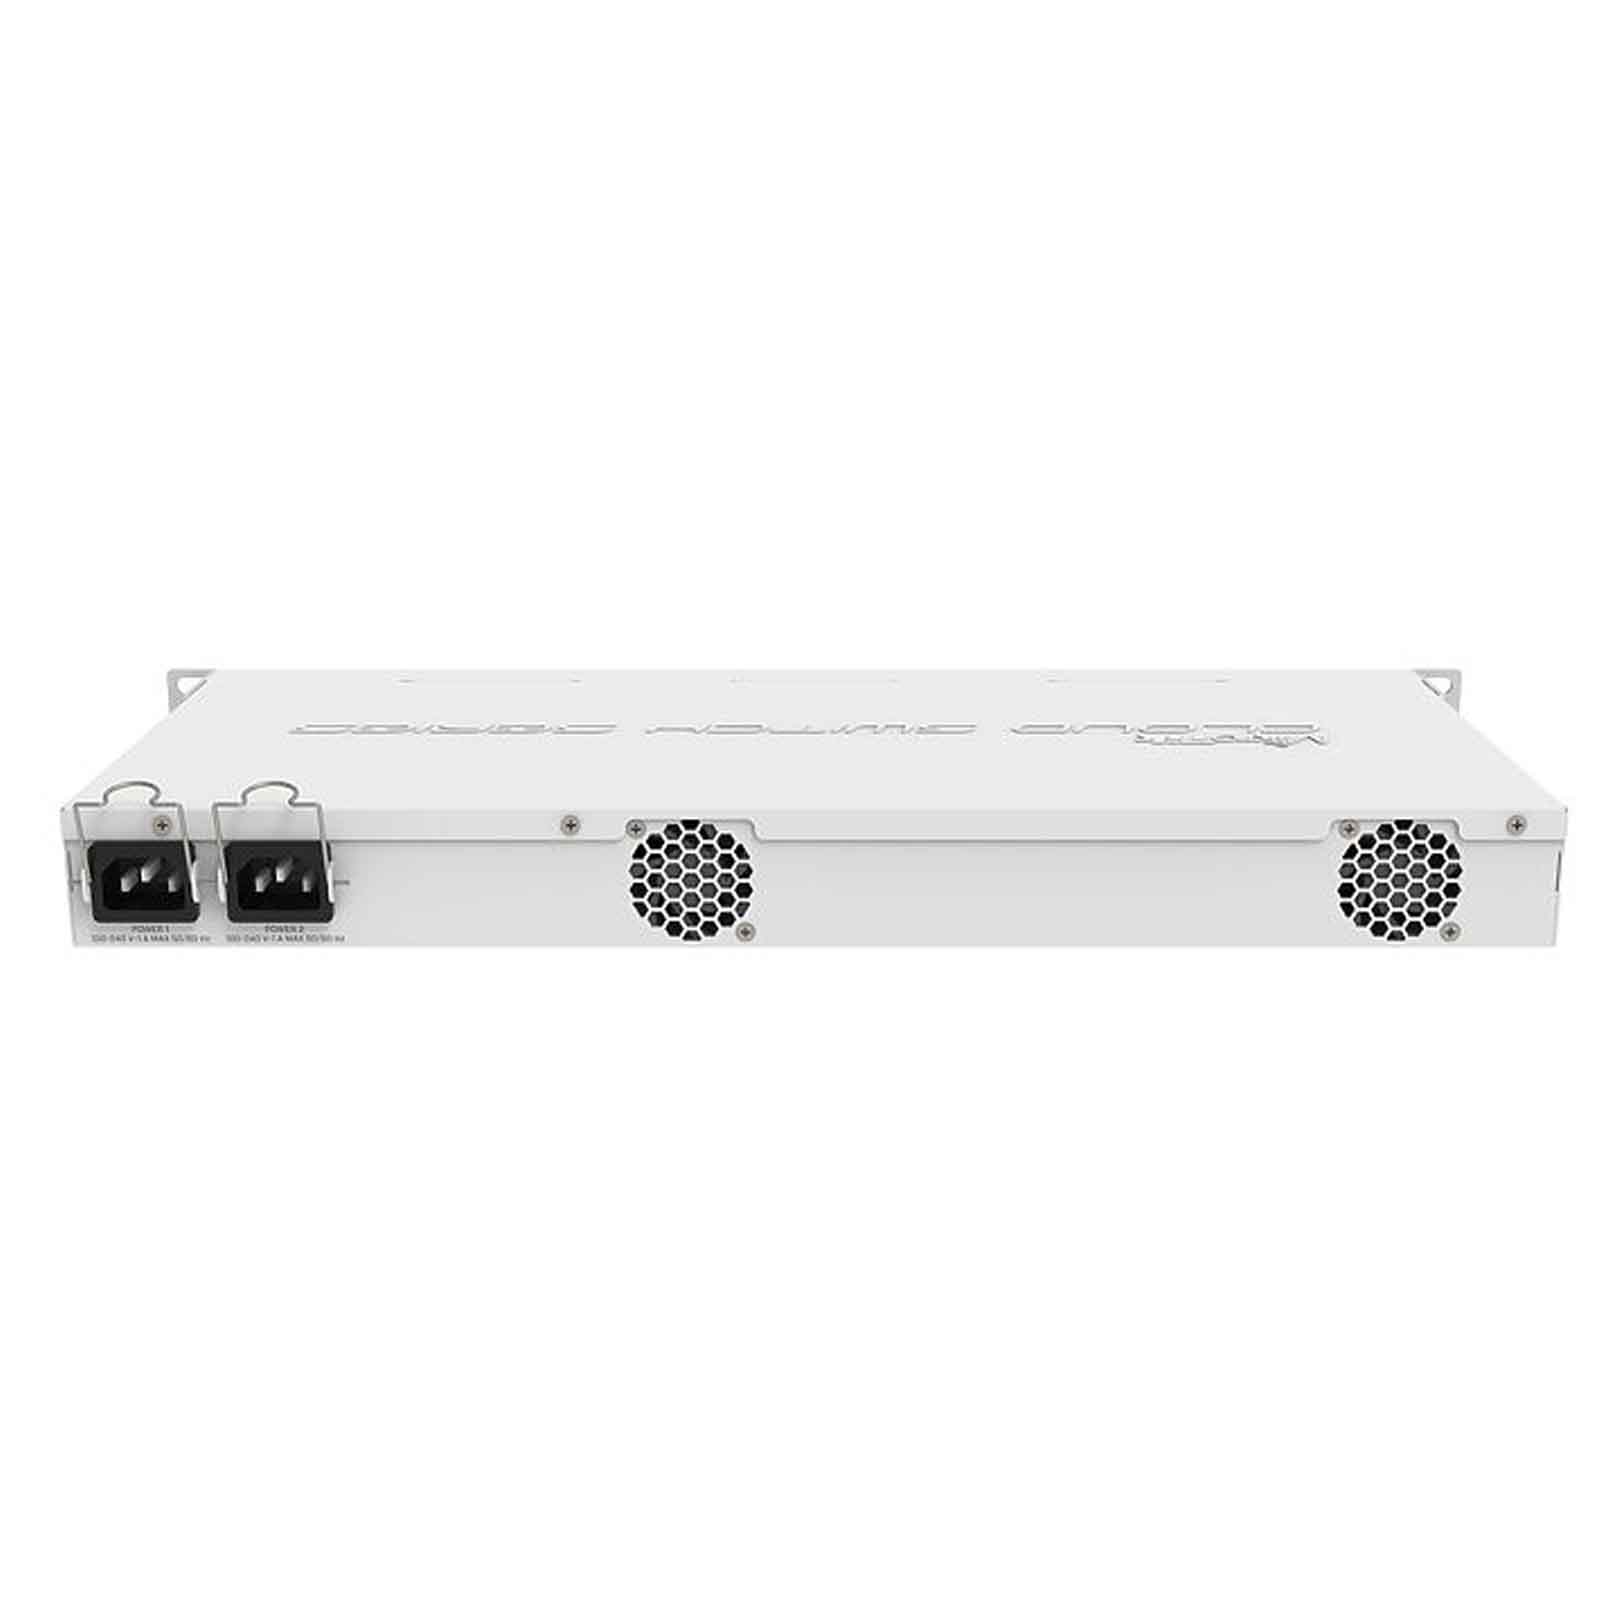 Cloud Router Switch CRS328-4C-20S-4S+RM